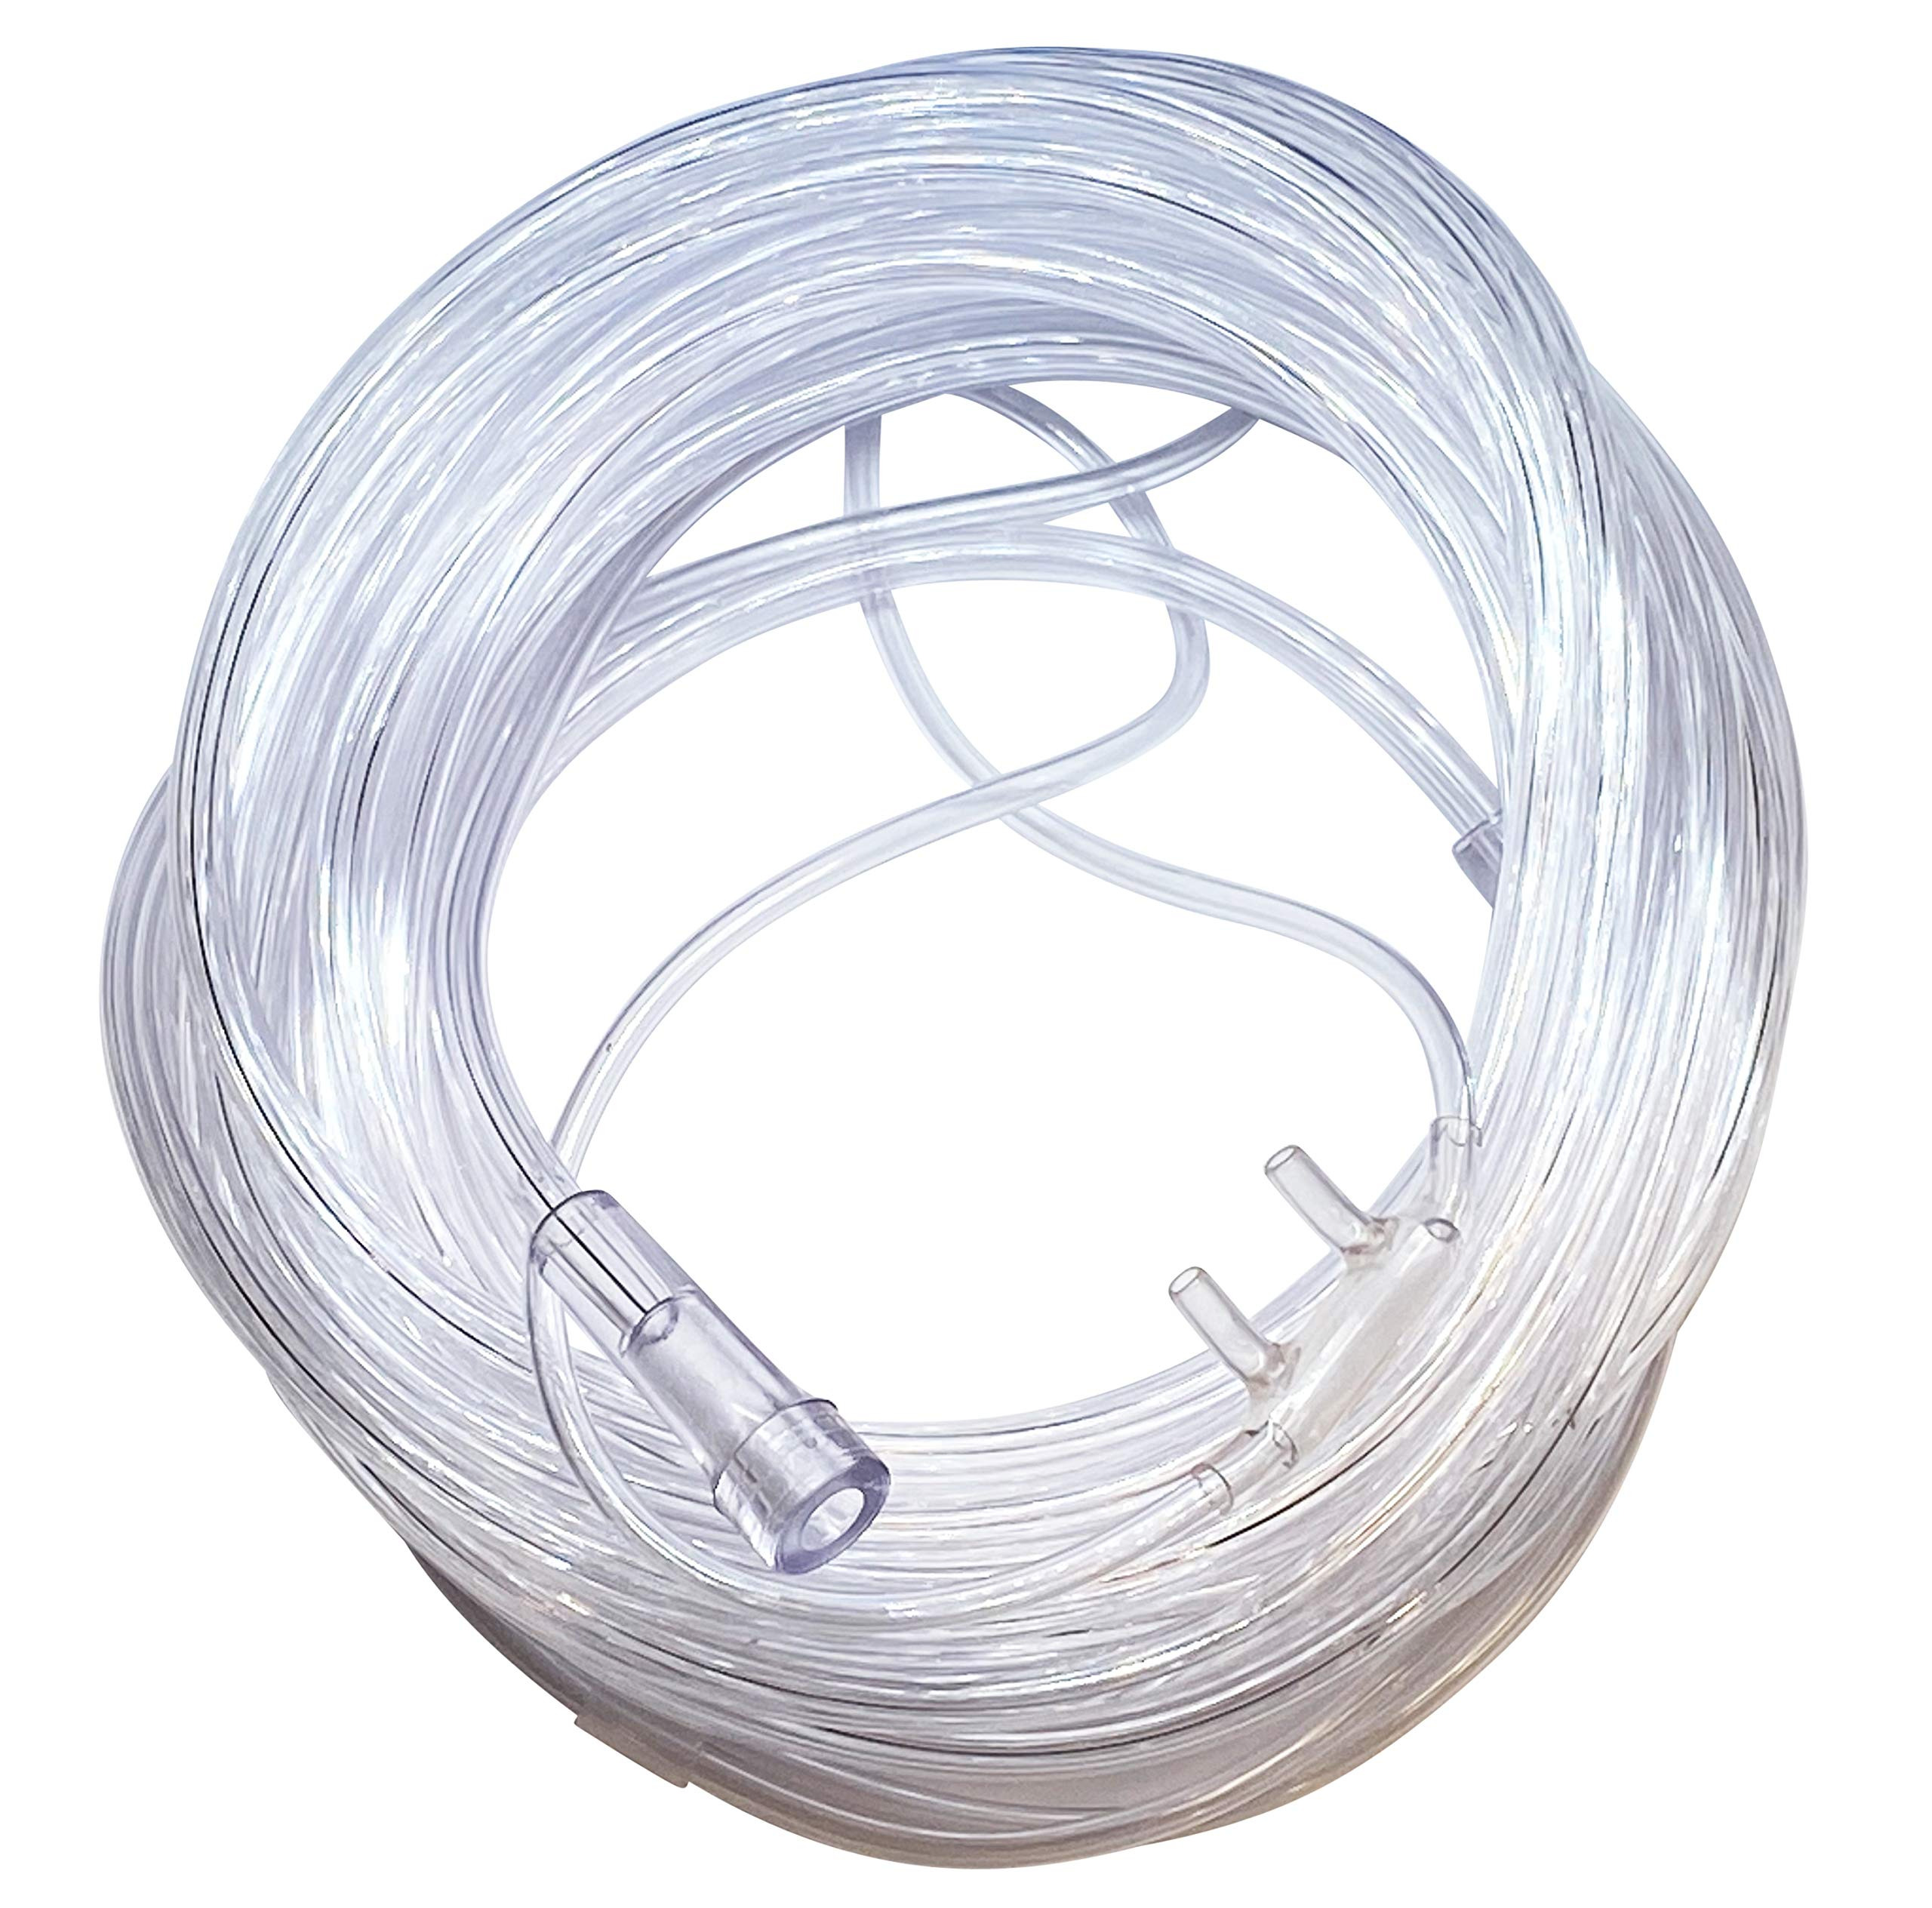 1-Pack Westmed #0195 Adult Comfort Plus Cannula with 25' Kink Resistant Tubing